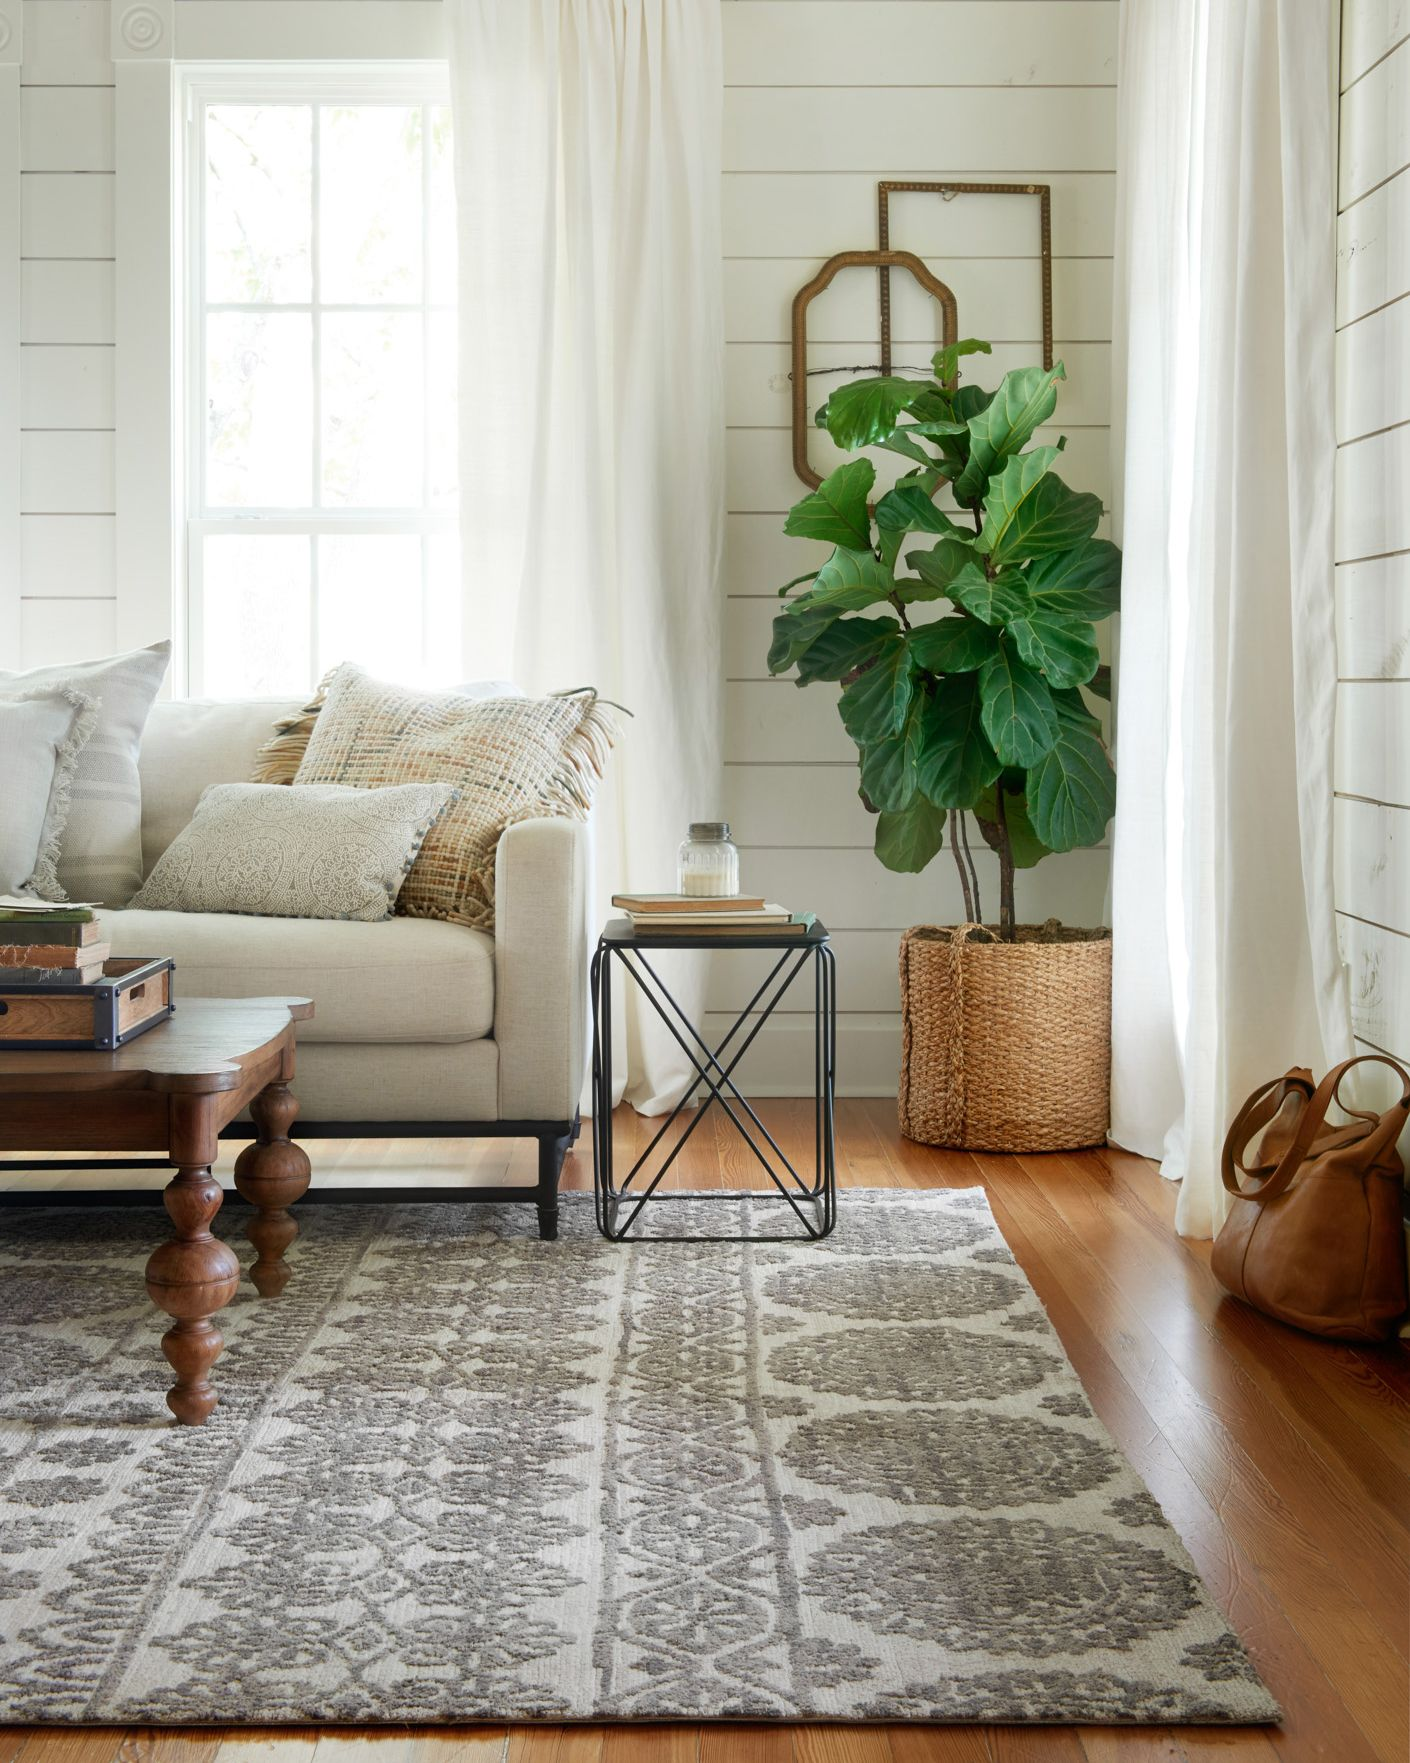 Joanna gaines hallway ideas   stunning rugs youull love from Magnolia Home  Magnolia homes